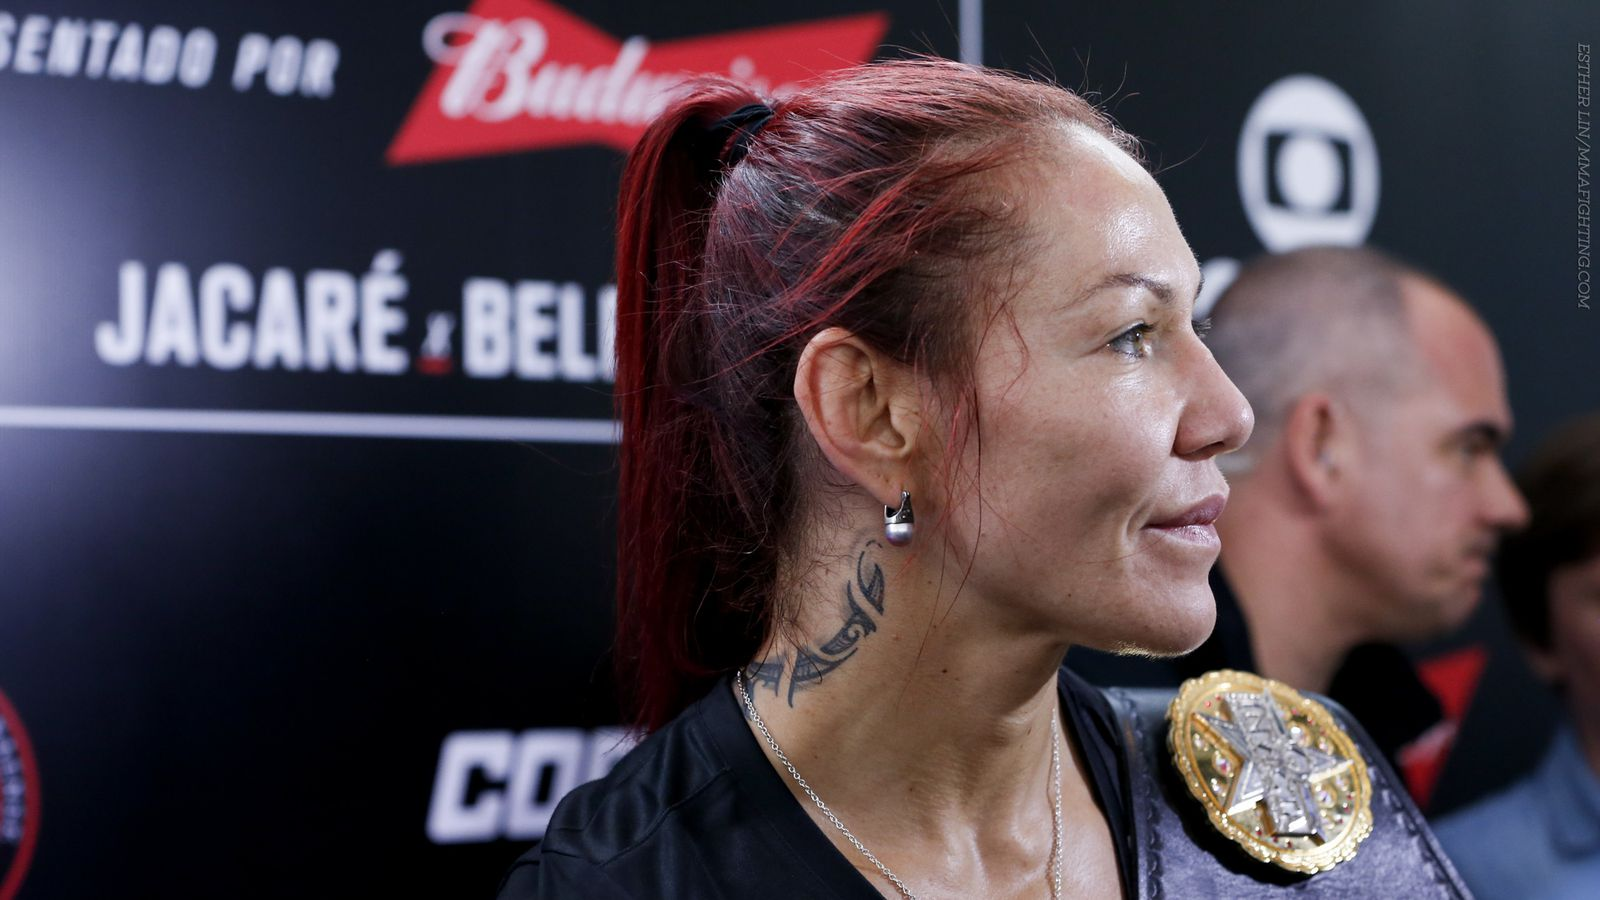 Cris Cyborg cited for battery after punching Angela Magana at UFC Athlete Retreat